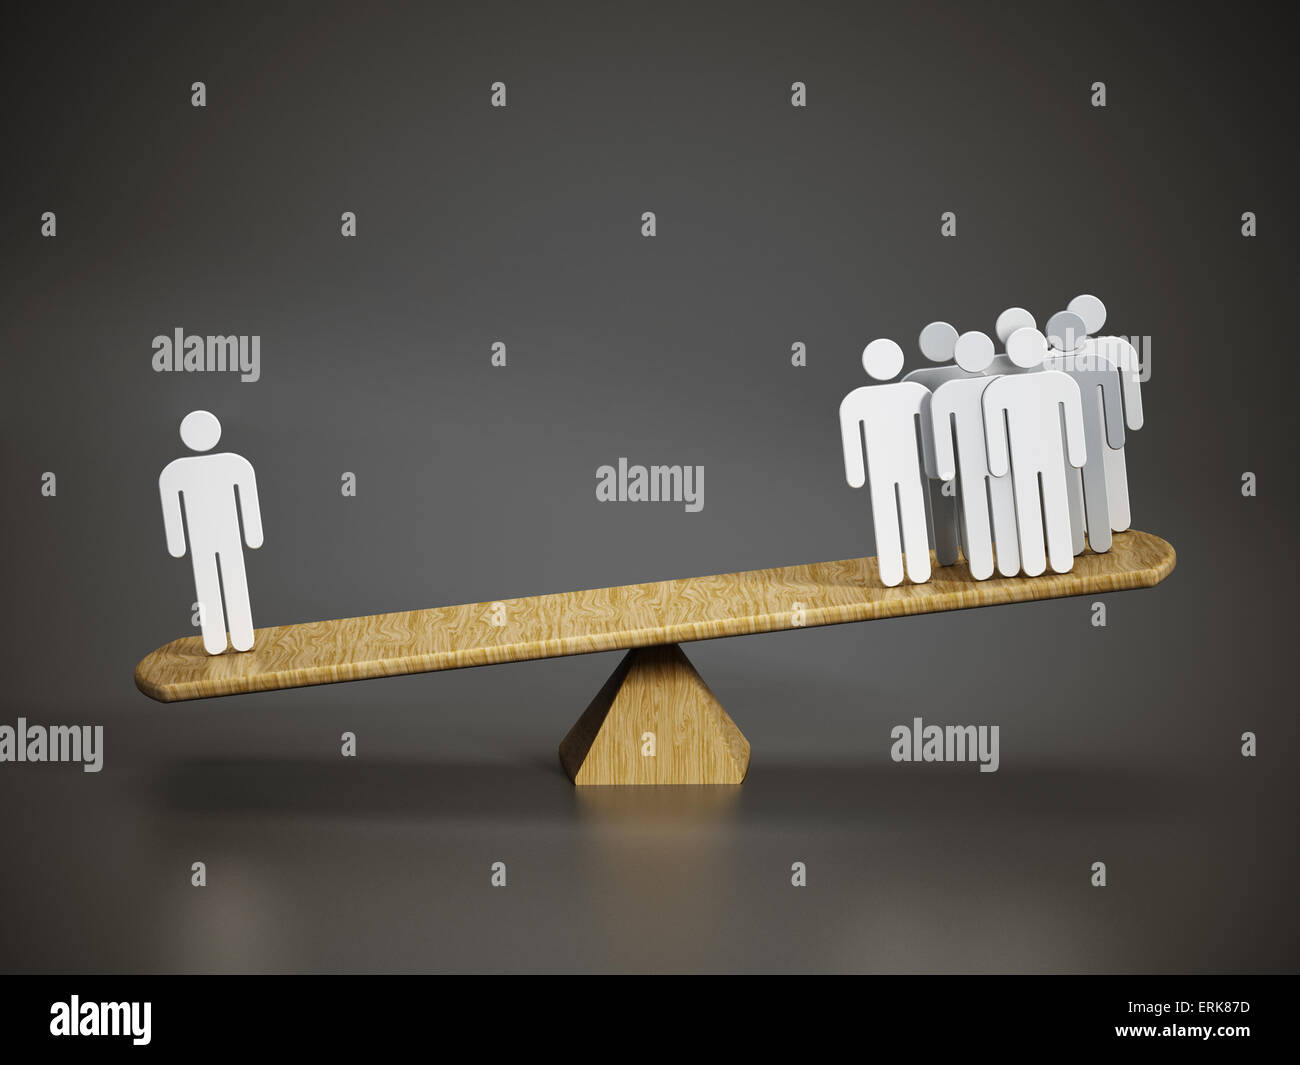 Business balance concept with one man versus a group of people on the seesaw. - Stock Image